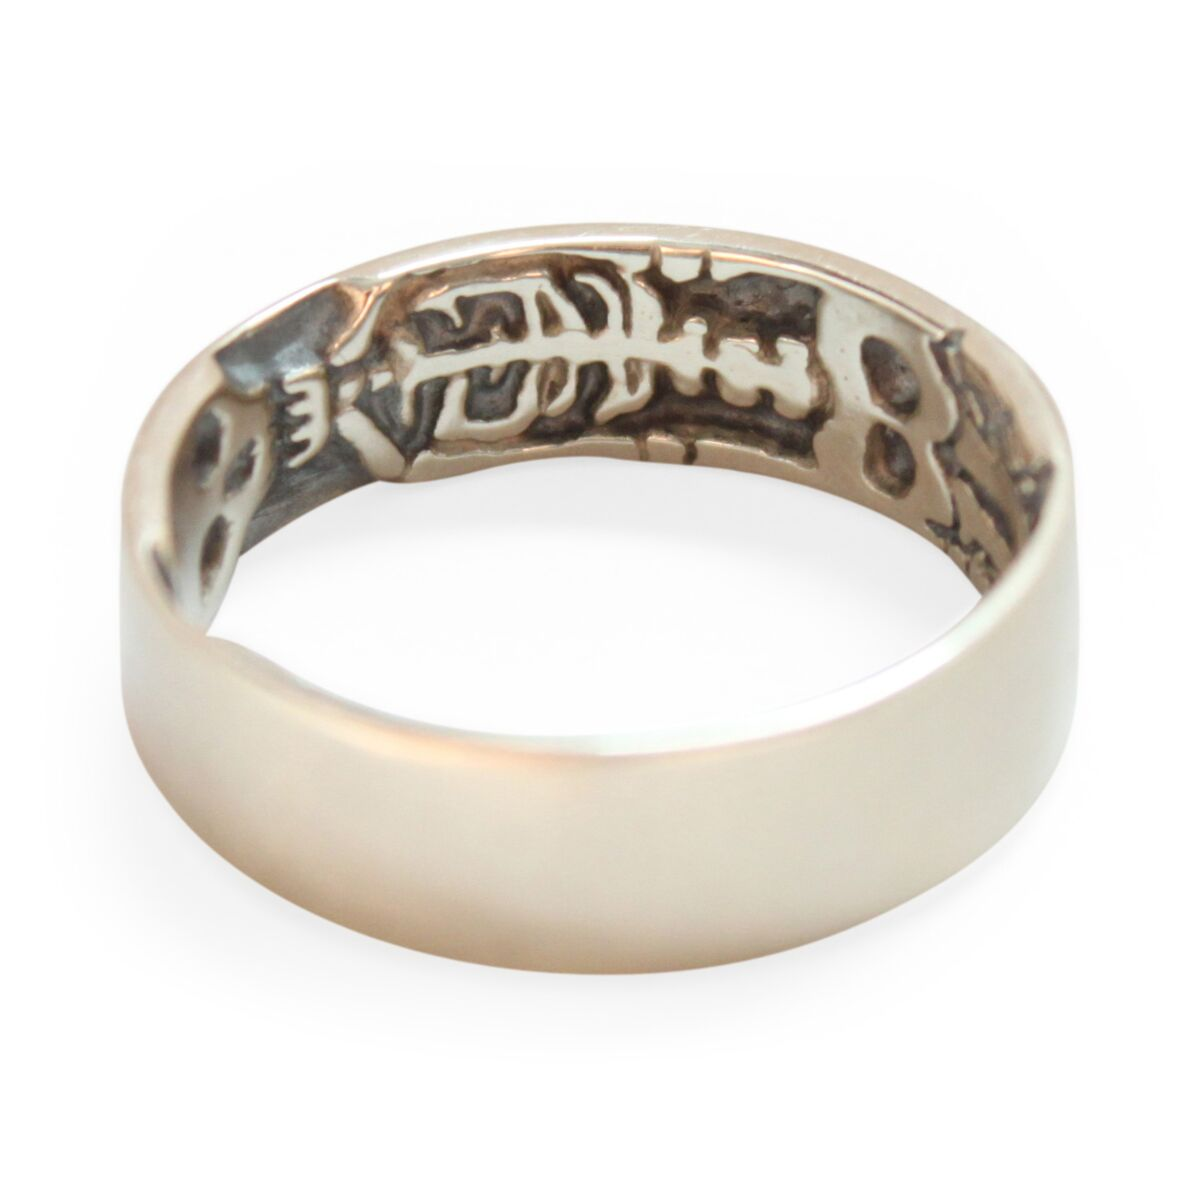 Skeleton Band Memento Mori Ring image